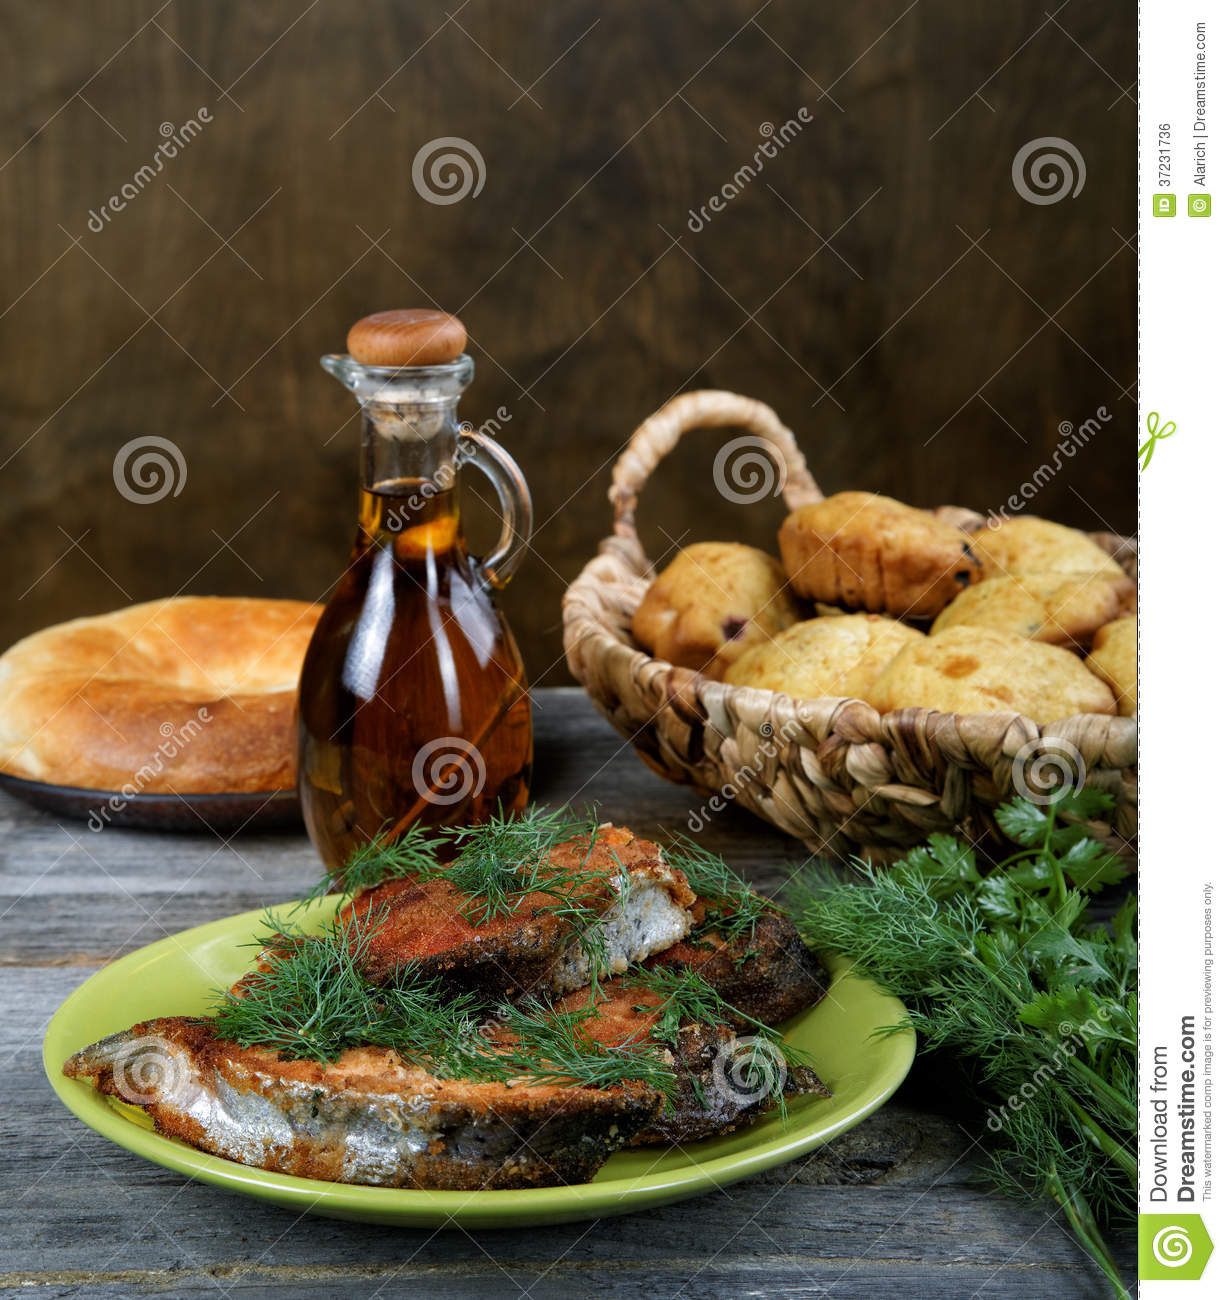 Fried fish with greens and oil royalty free stock image for What is the best oil for frying fish